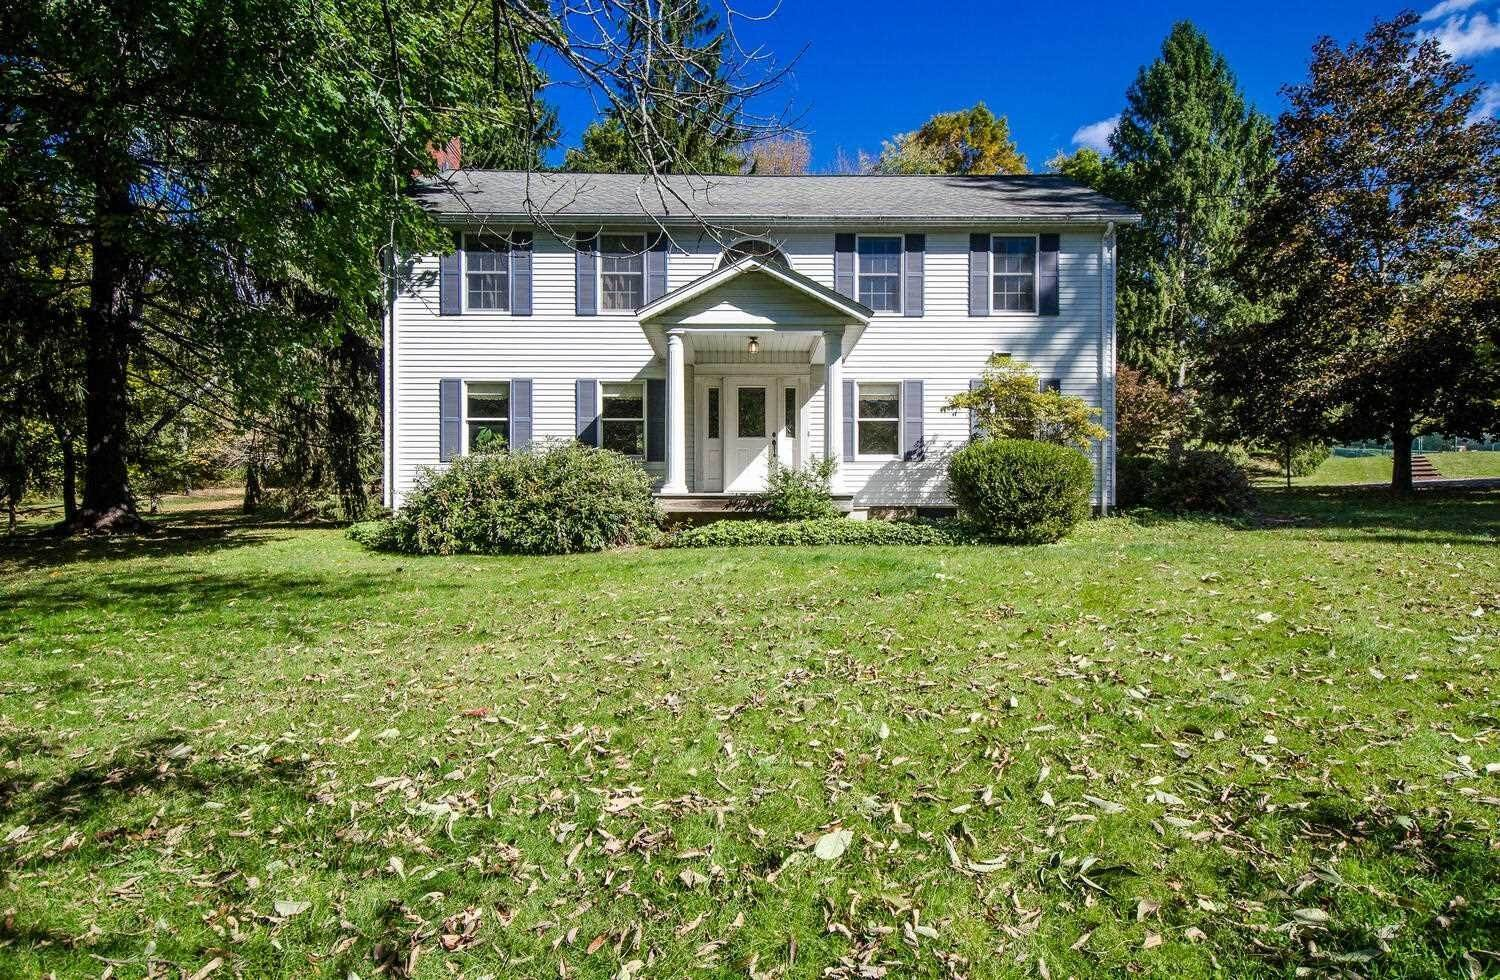 Single Family Homes for Sale at 141 N CLOVE Road Union Vale, New York 12585 United States